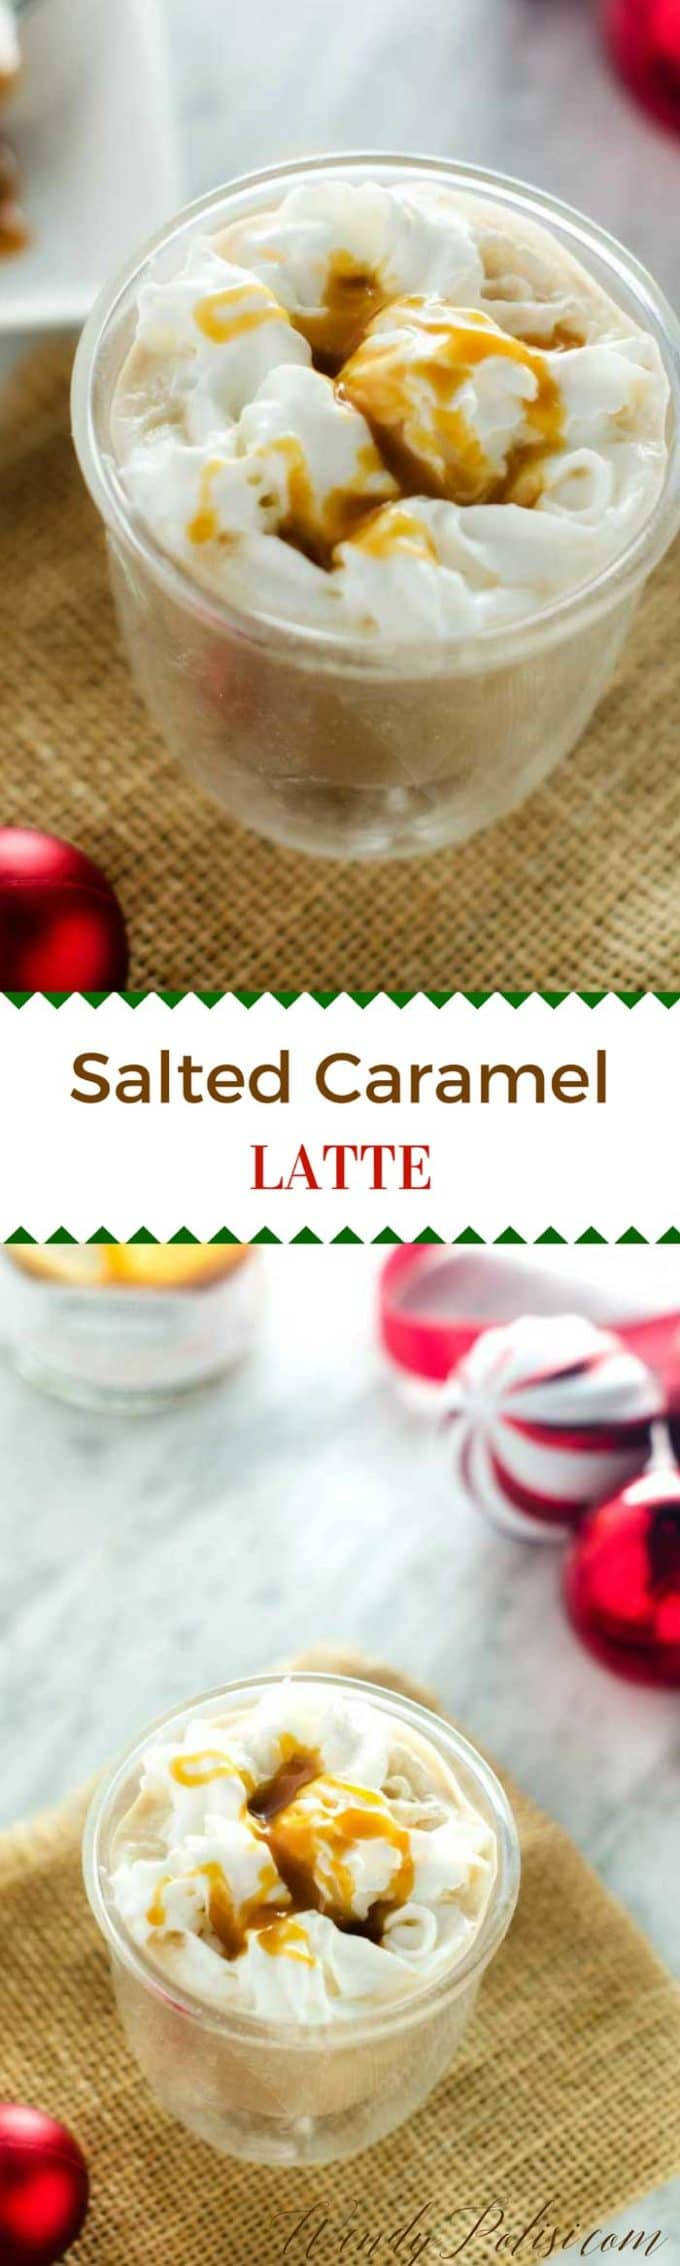 This Salted Caramel Latte is so easy to make and the perfect indulgence for your morning.  Make it dairy-free by using dairy-free milk!